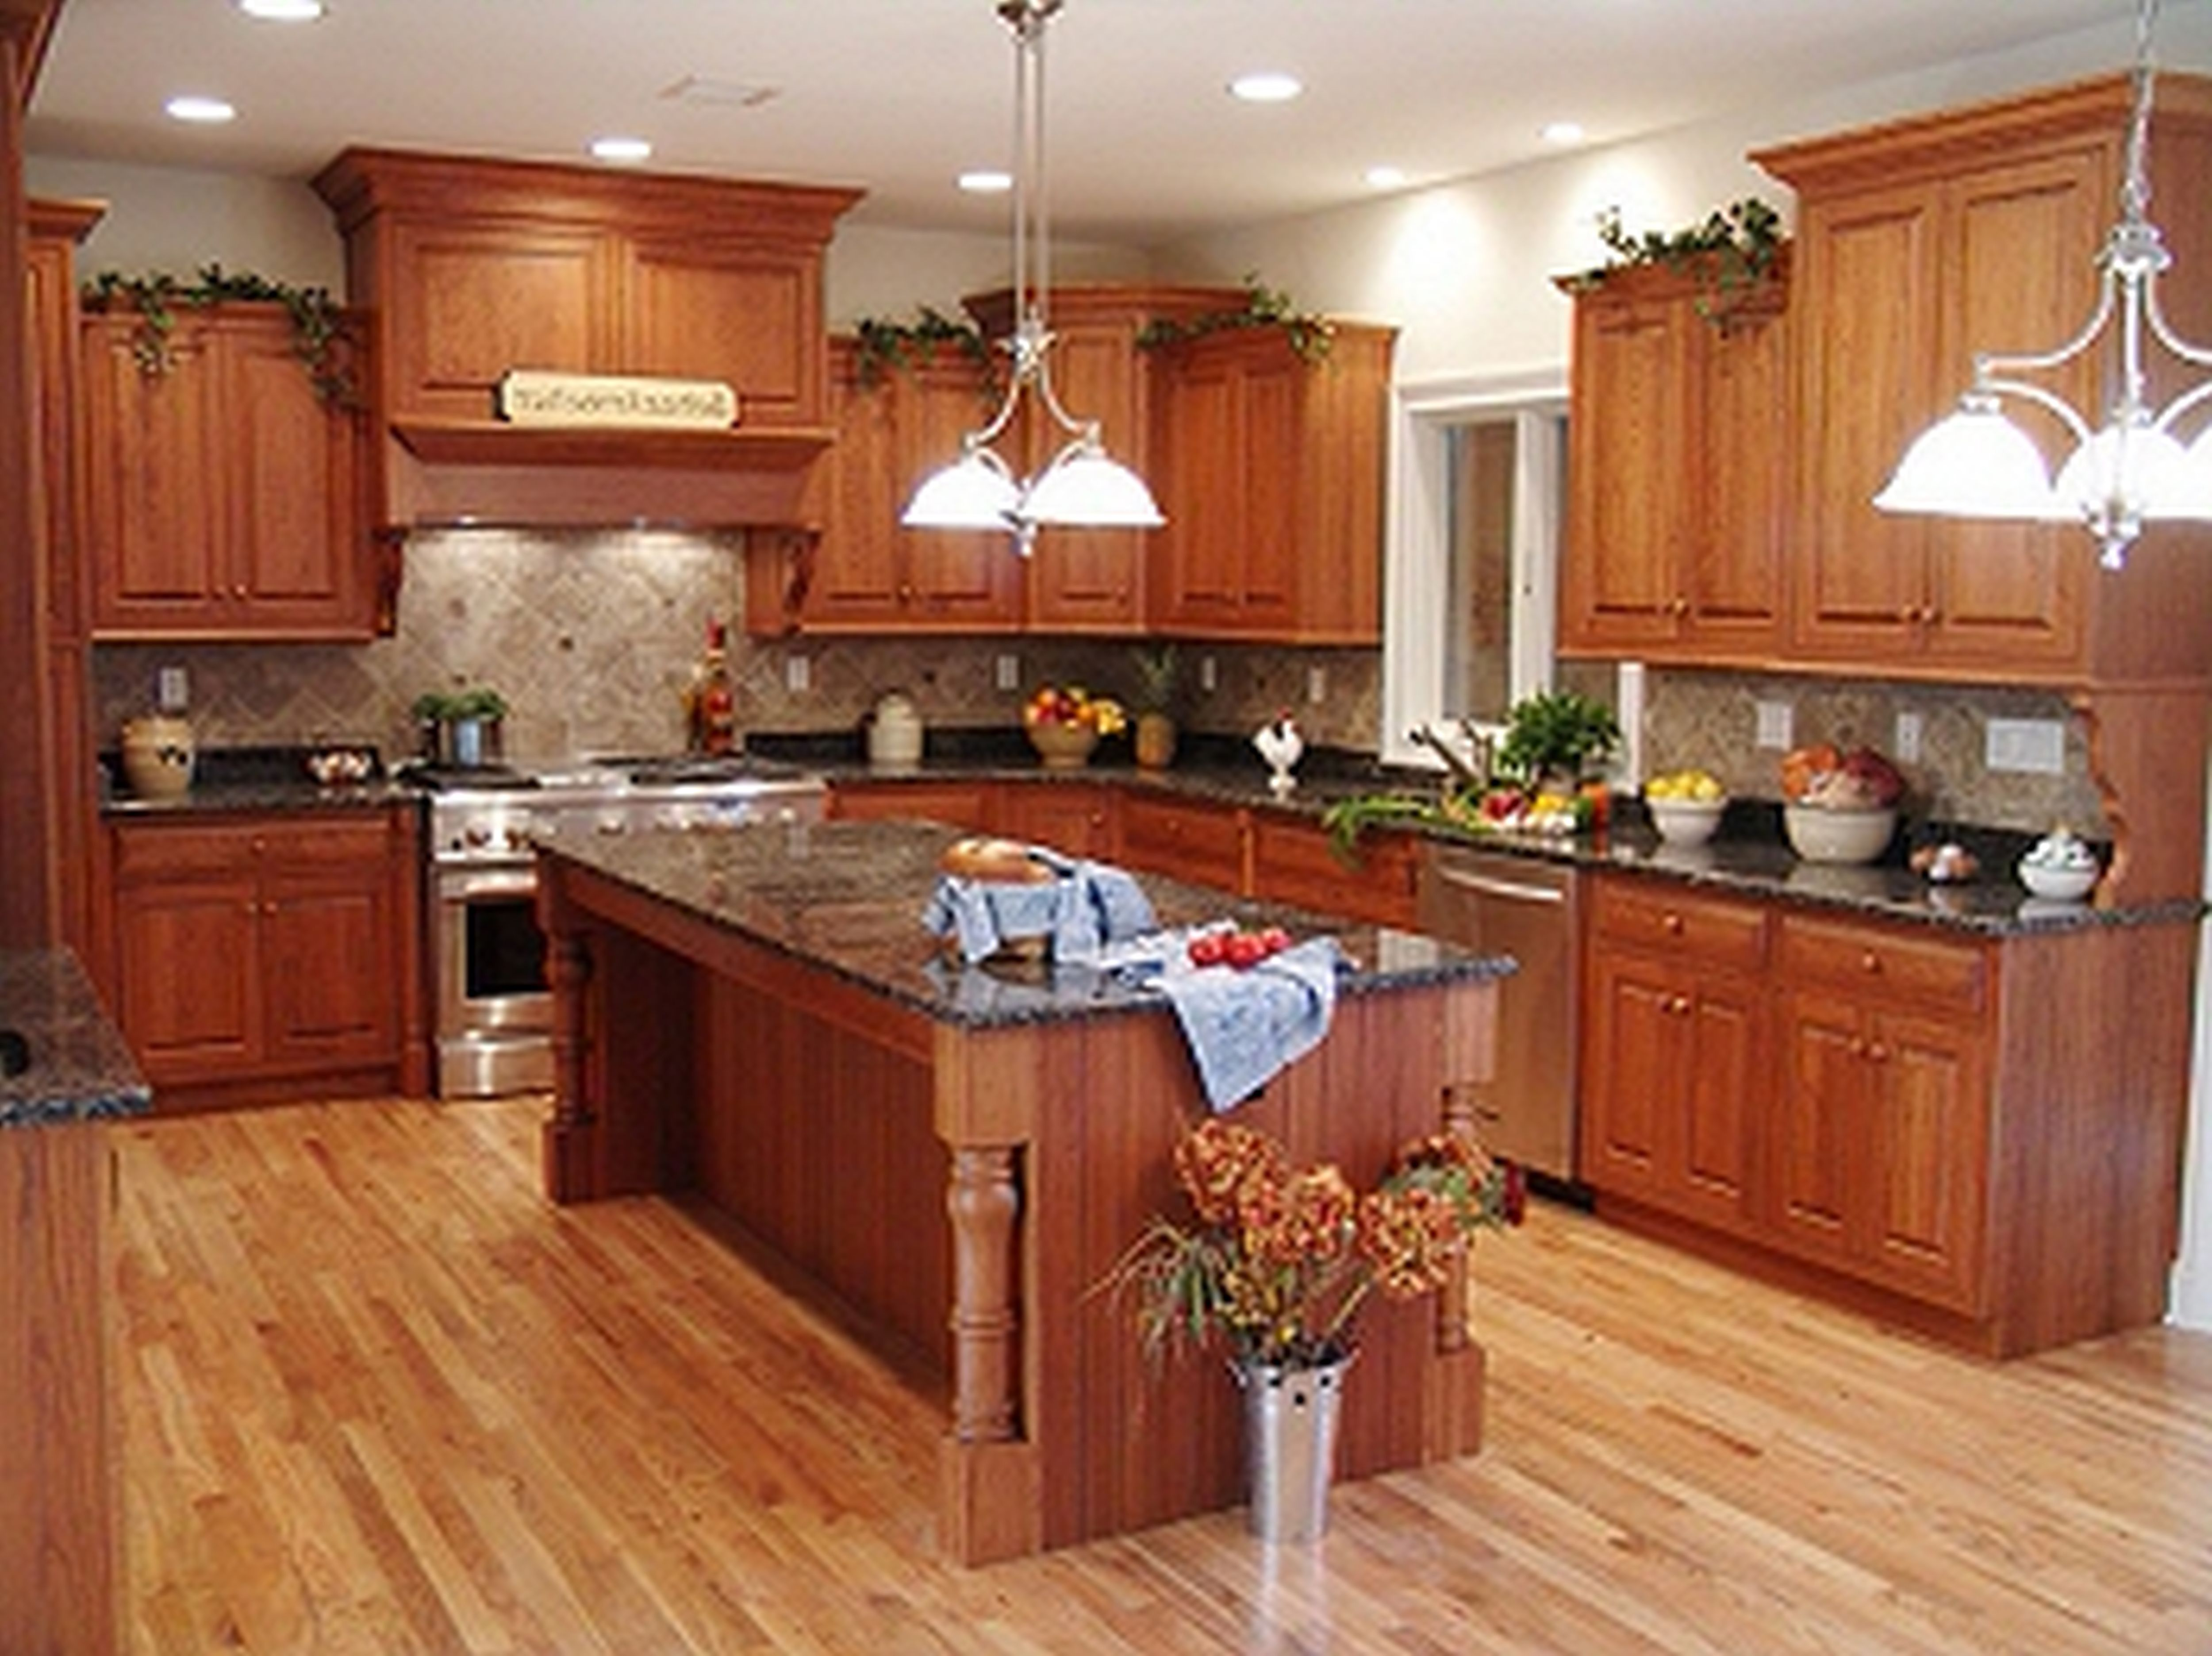 Rustic kitchen cabinets fake wooden kitchen floor plans with mahogany kitchen cabinets - Rustic wooden kitchen cabinet ...